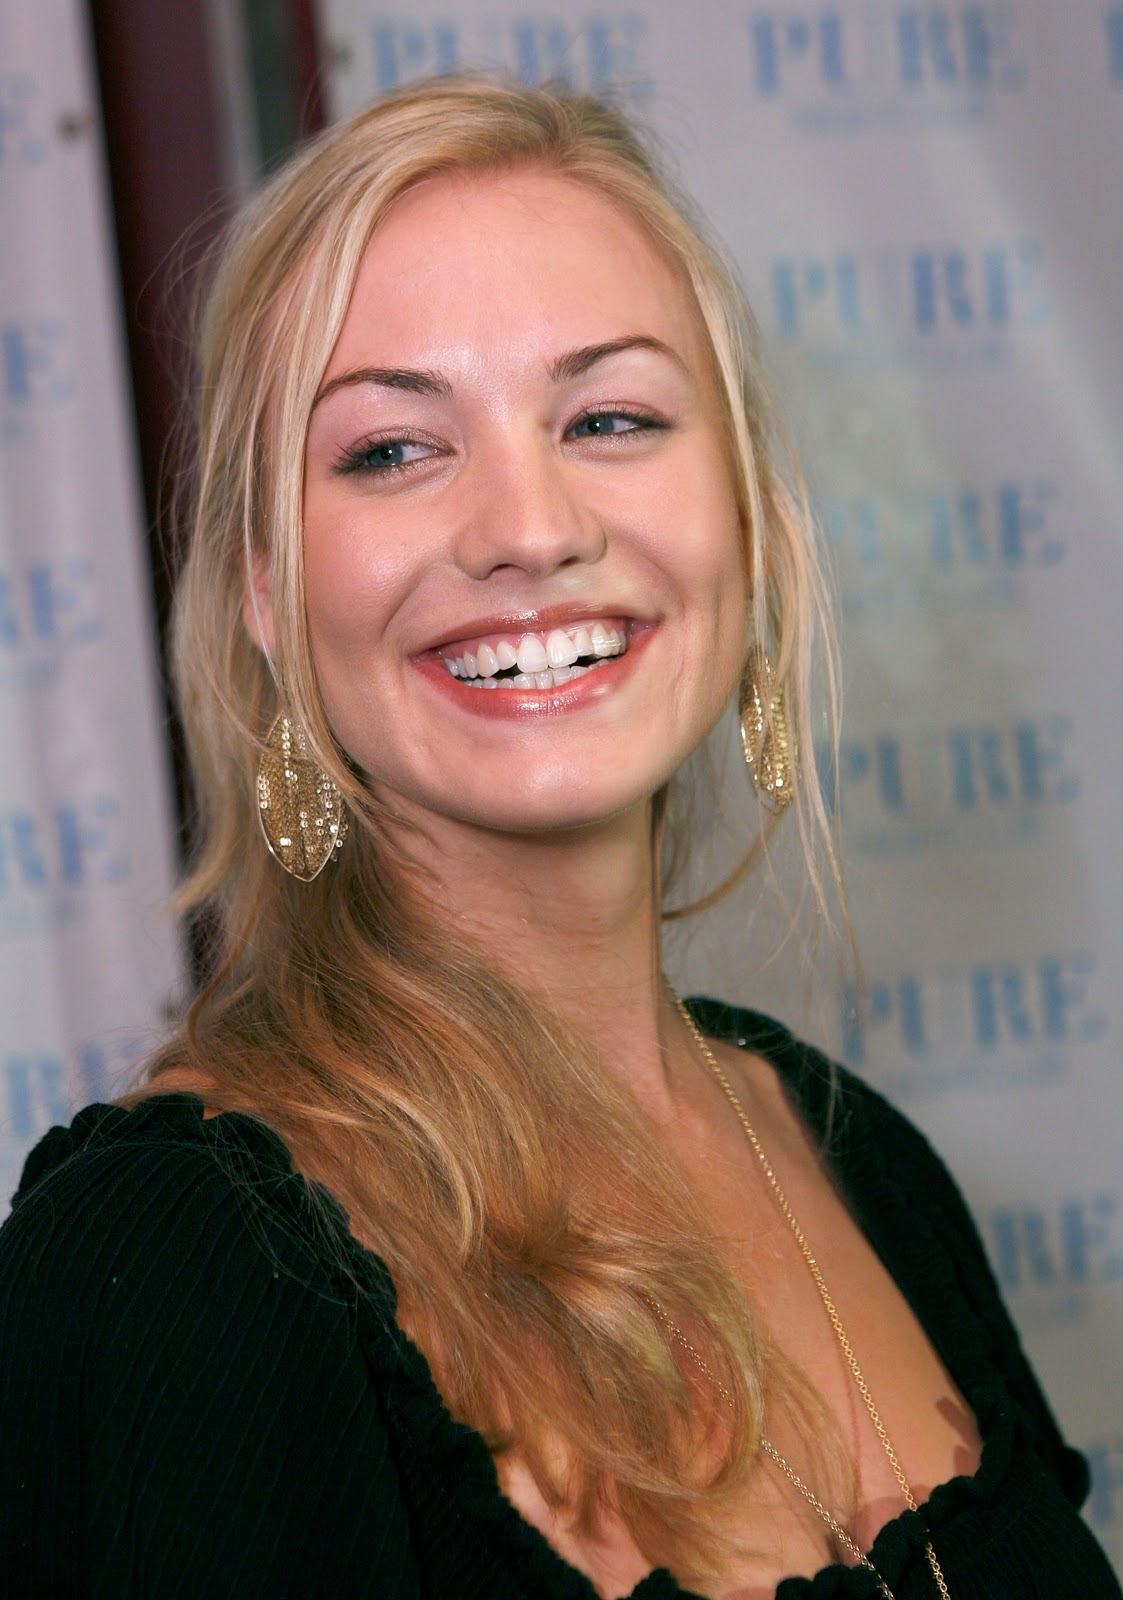 strahovski yvonne dating Yvonne strahovski source is an unofficial and non-profit fansite dedicated to yvonne strahovski i am not associated with yvonne or her management.